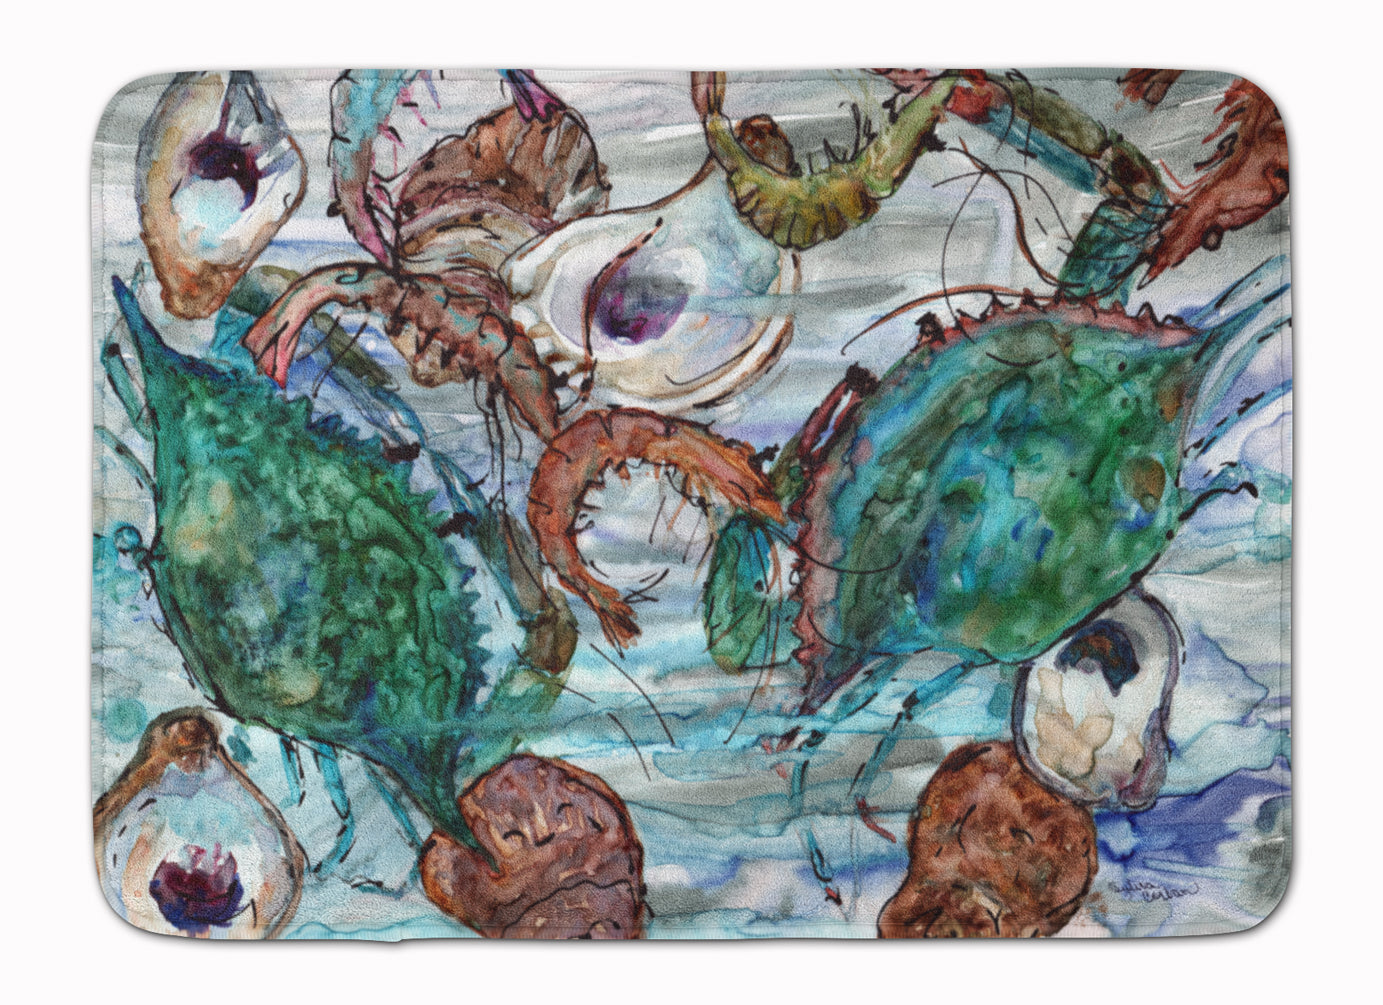 Shrimp, Crabs and Oysters in water Machine Washable Memory Foam Mat 8965RUG by Caroline's Treasures